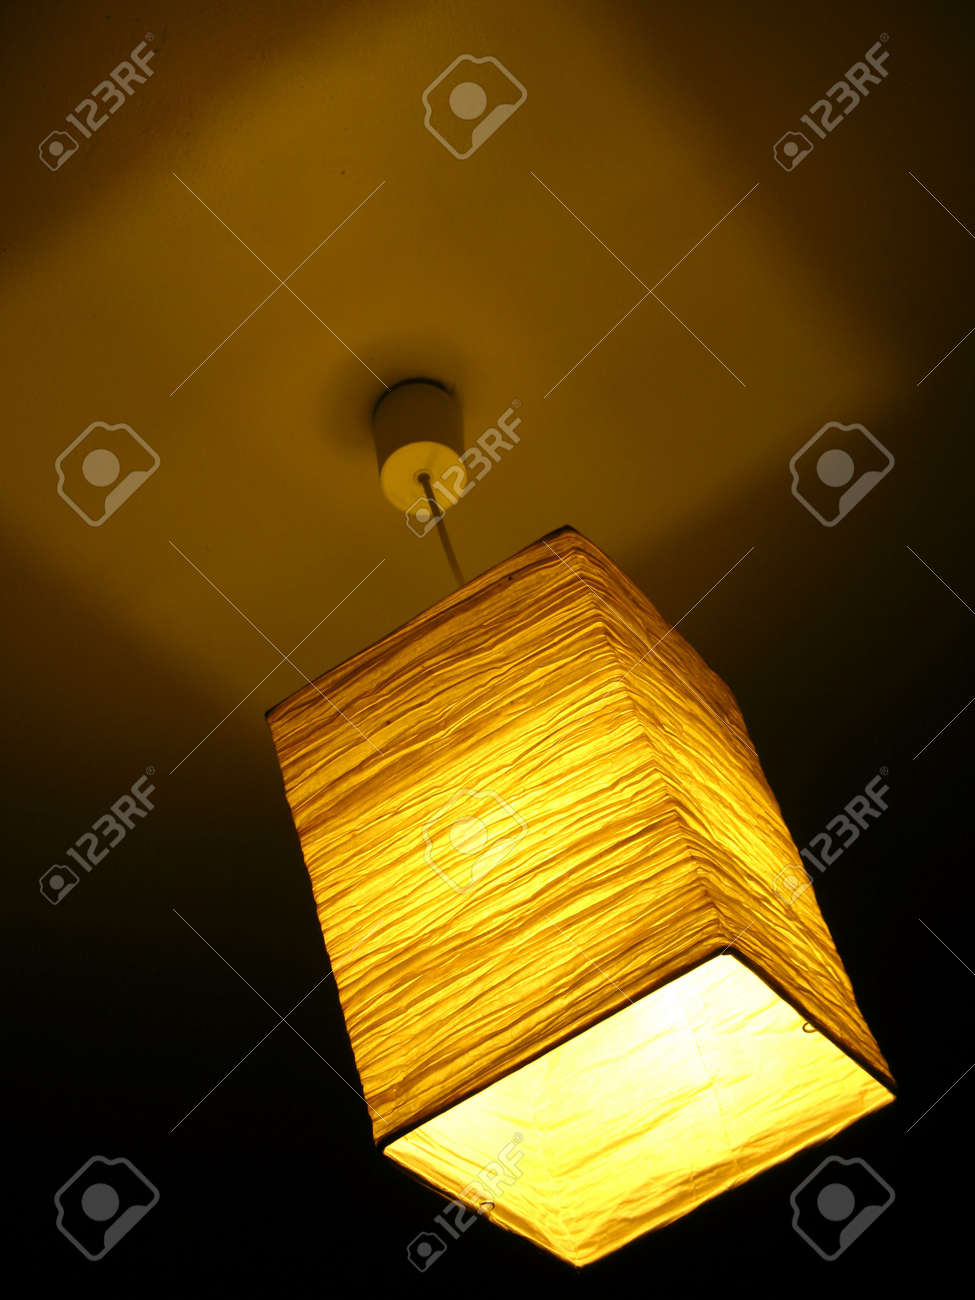 Overhead Lighting Overhead Light With Crinkled Cloth Lamp Shade Has A Golden Glow